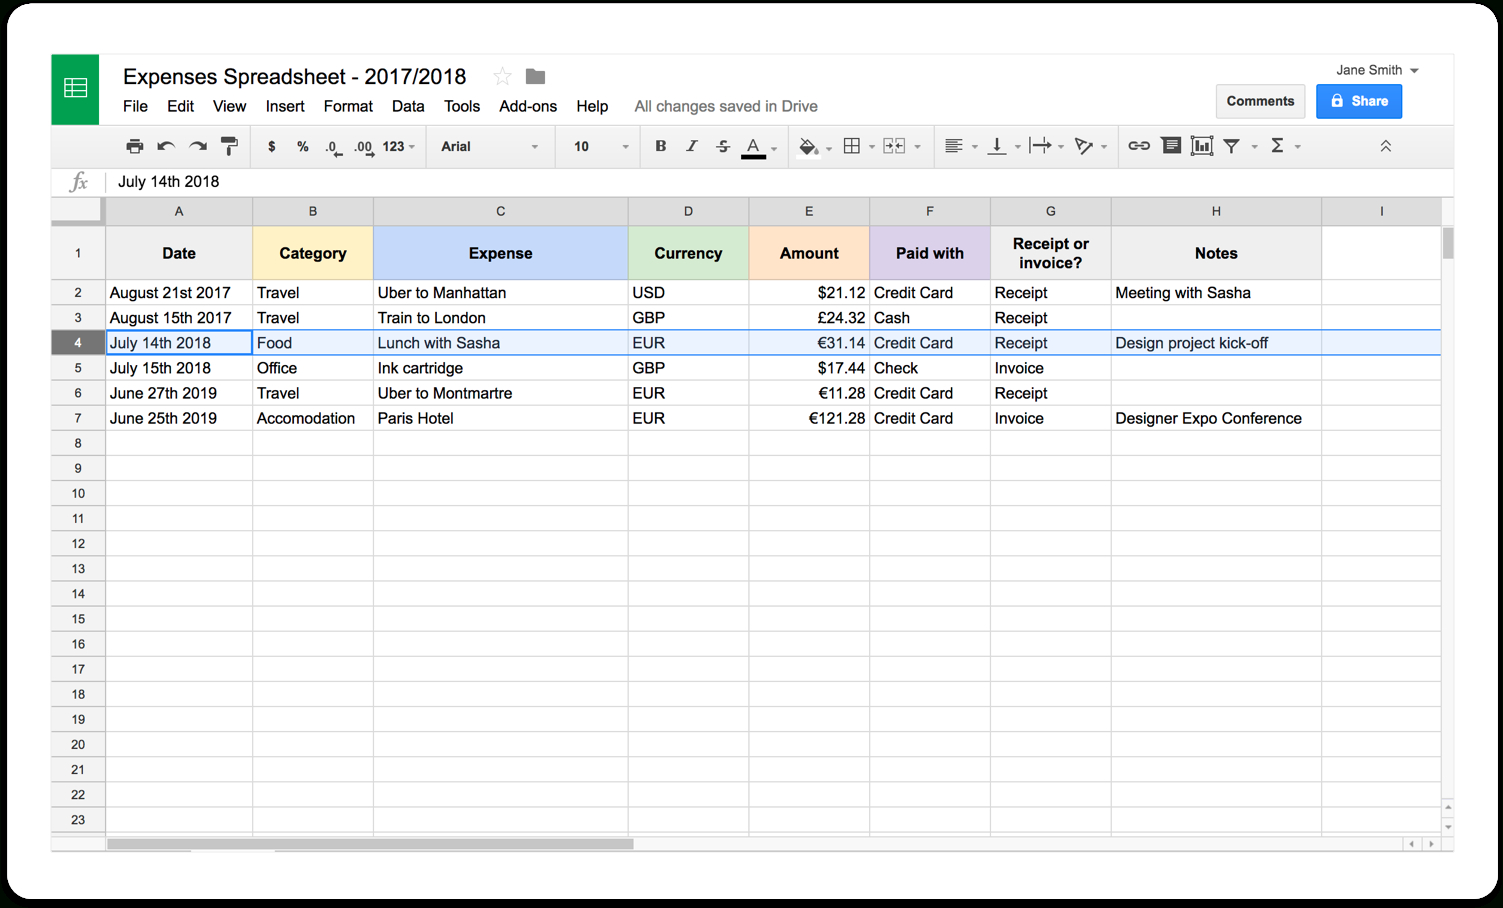 Freelance Spreadsheet With Self Employed Expenses Spreadsheet Freelance Excel Design  Parttime